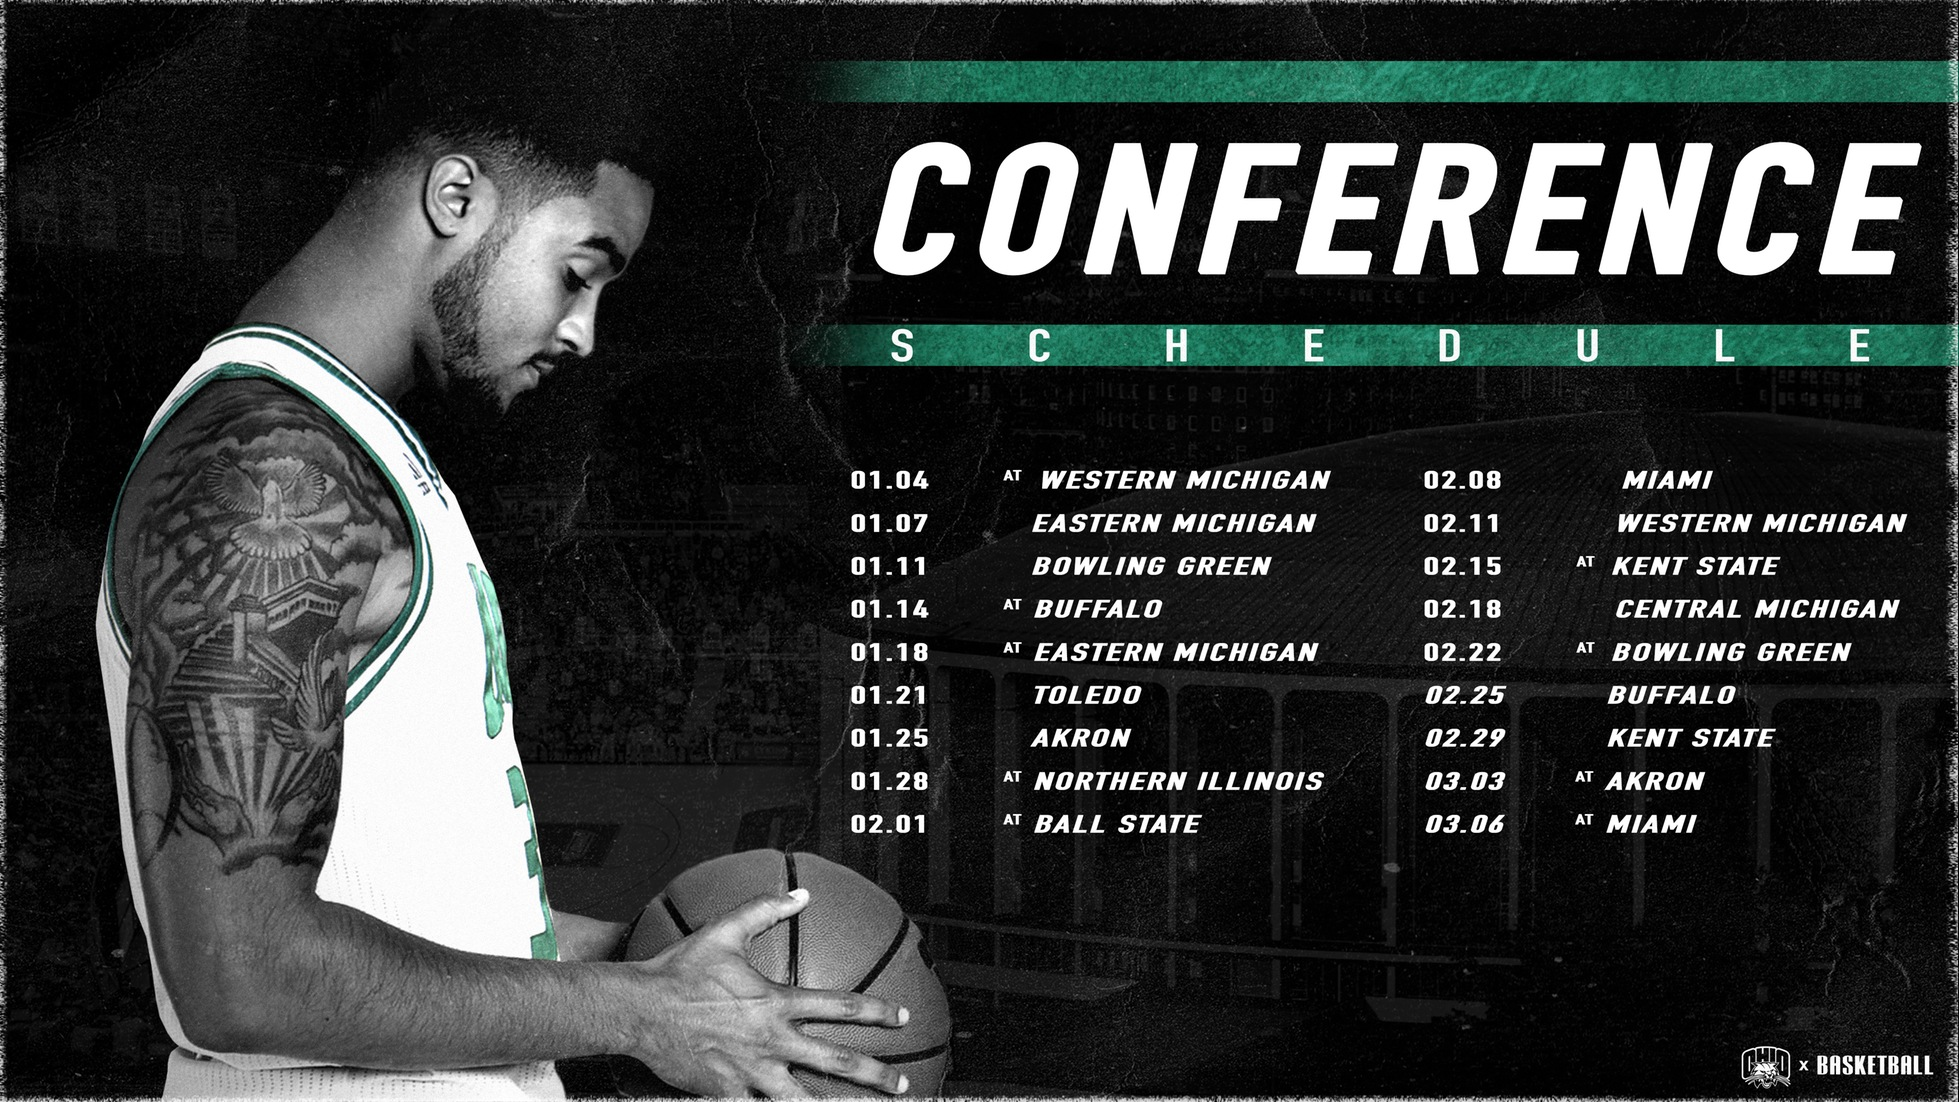 Ohio Men's Basketball's 2020 Conference Schedule Announced